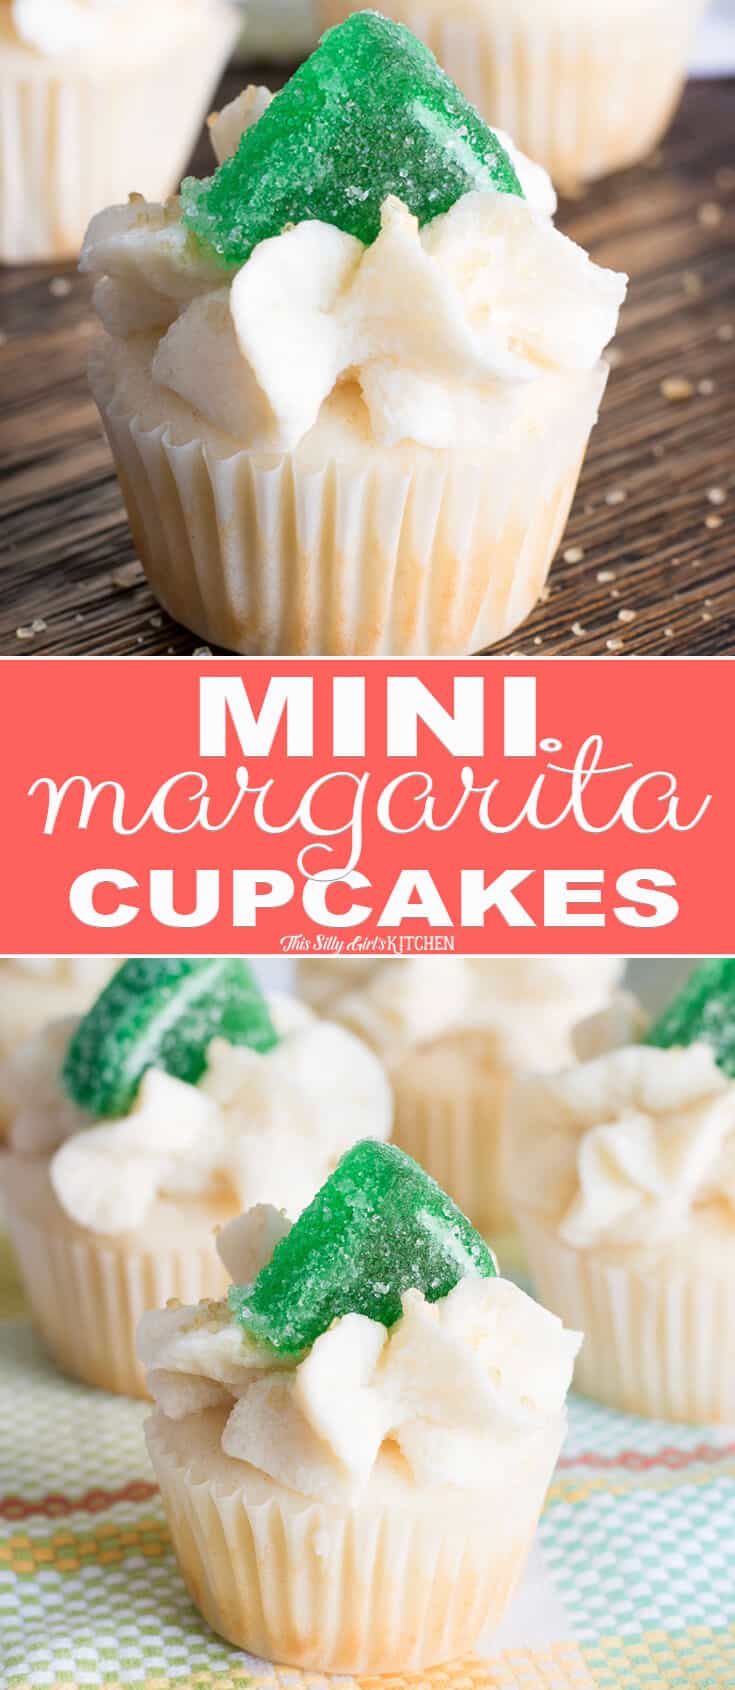 Mini Margarita Cupcakes, festive bite-sized cupcakes with margarita flavors! #Recipe from ThisSillyGirlsKitchen.com #cupcakes #margarita #margaritacupcakes